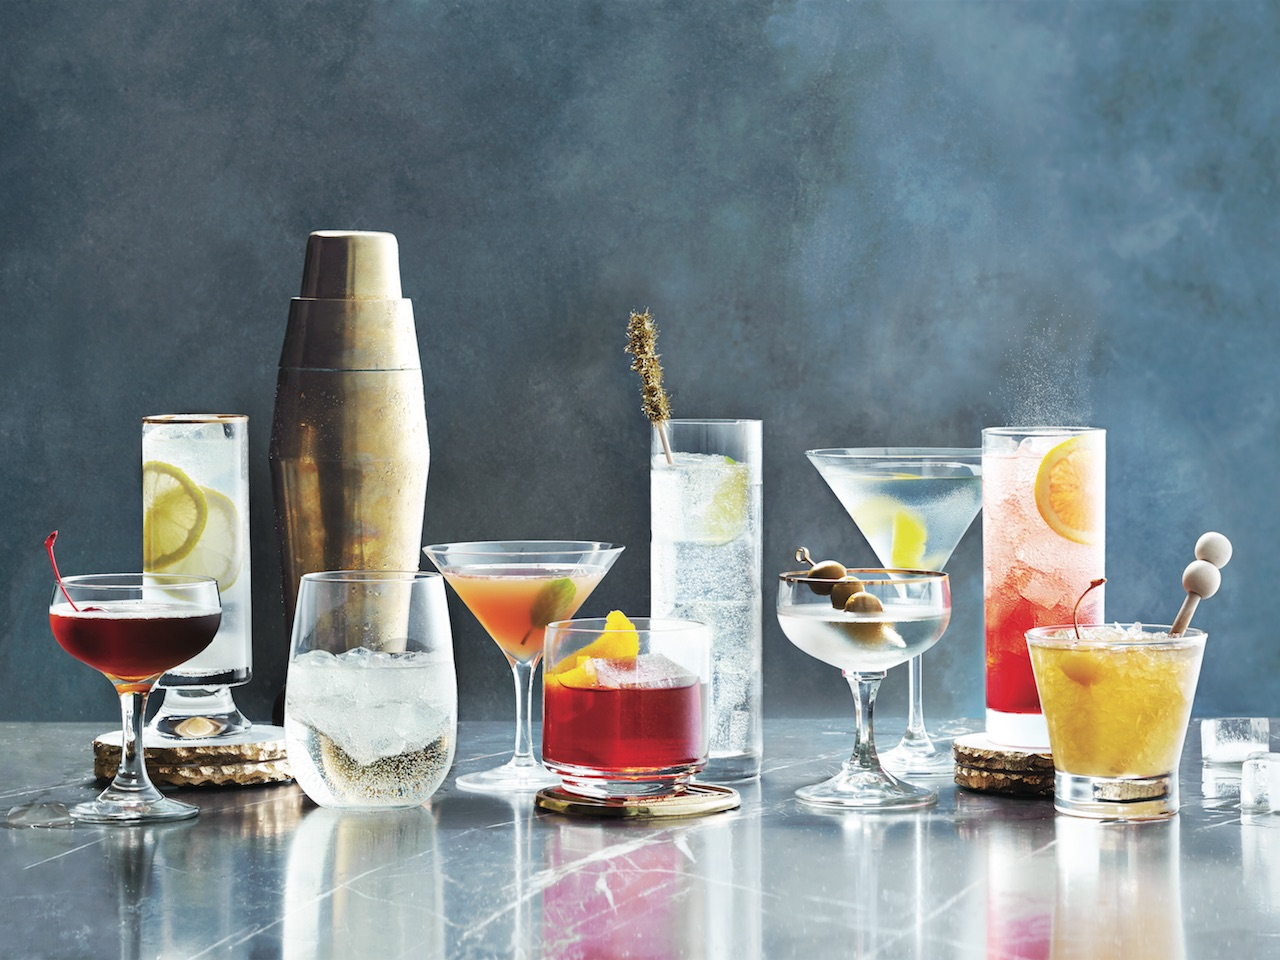 Assortment of cocktails on a grey marble counter